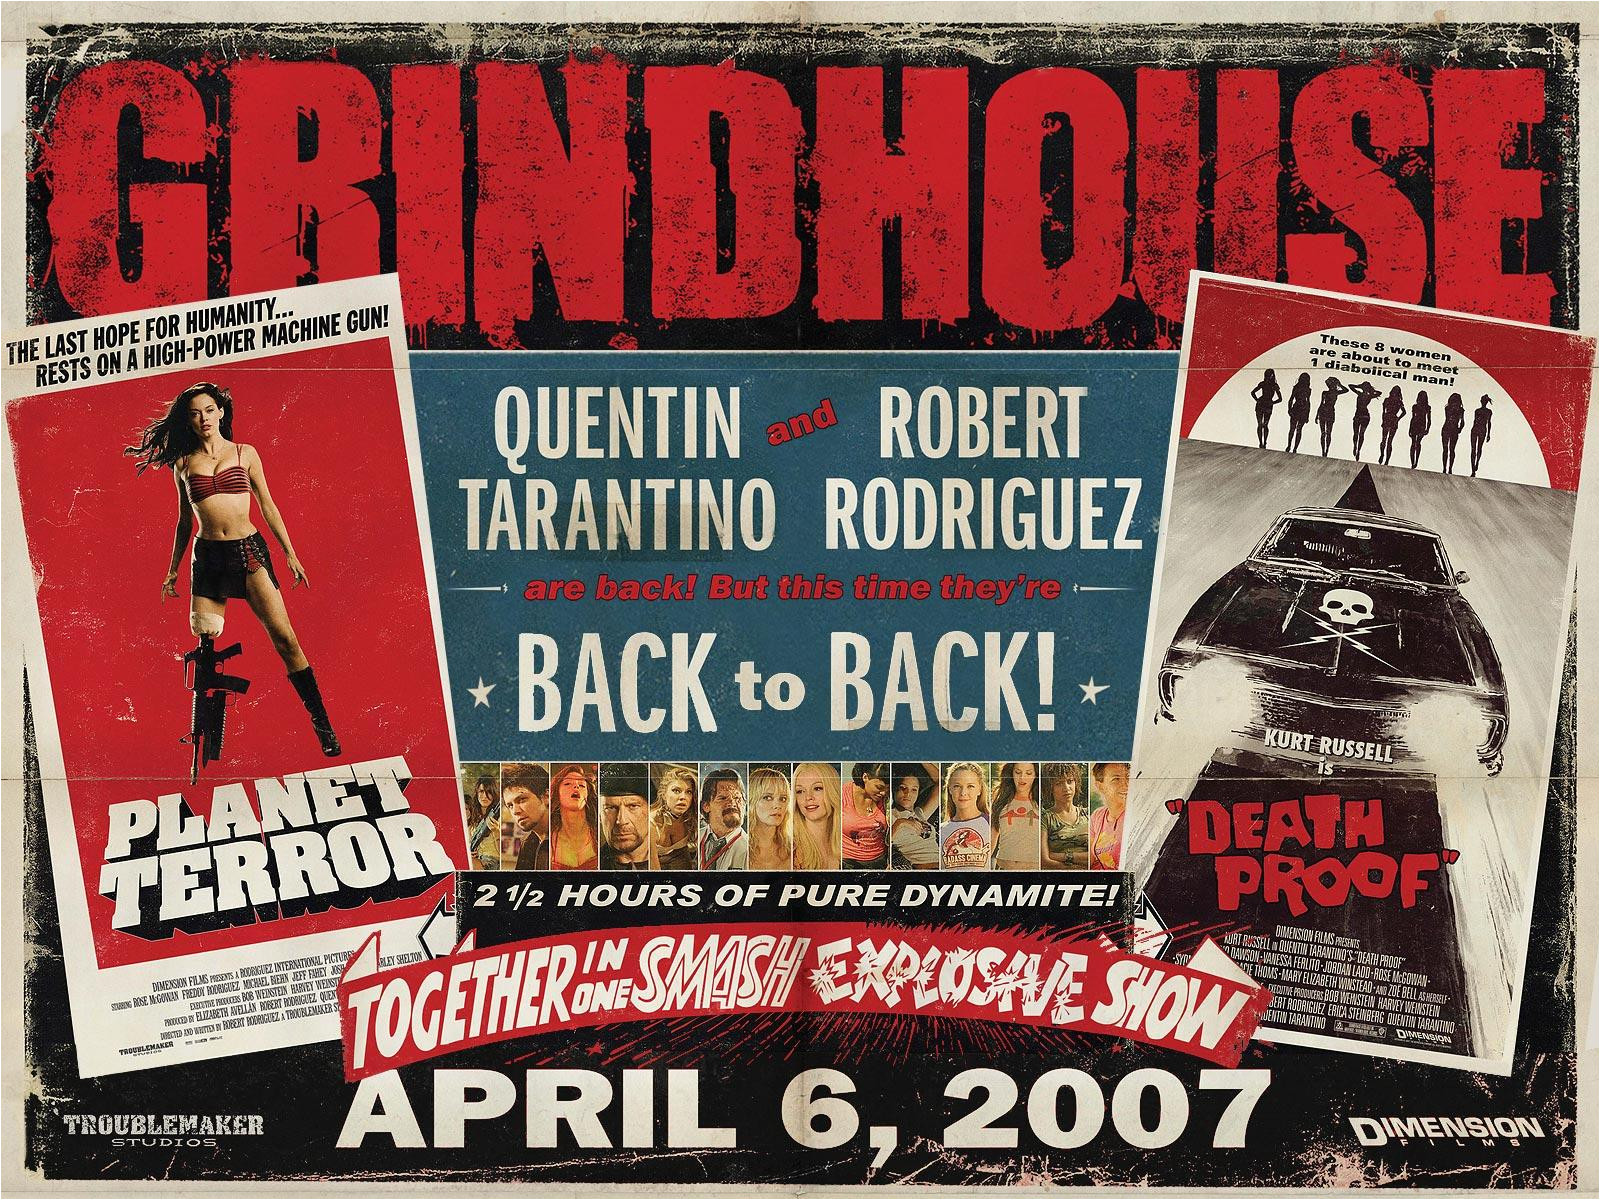 Grindhouse Poster Template Grindhouse Planet Terror Death Proof Movie Poster